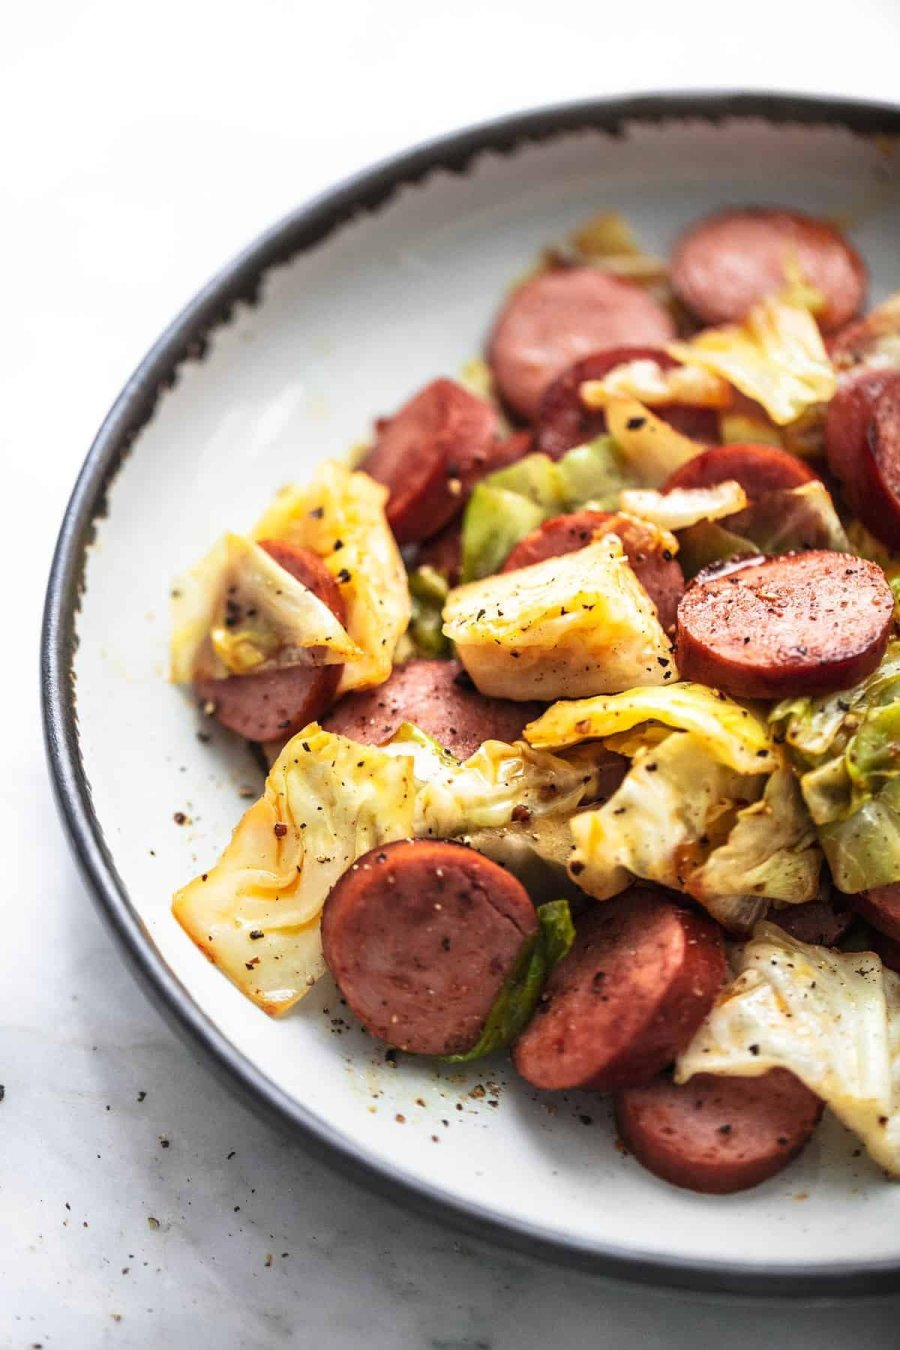 Easy 30-minute Sausage and Cabbage Skillet healthy dinner meal recipe | lecremedelacrumb.com